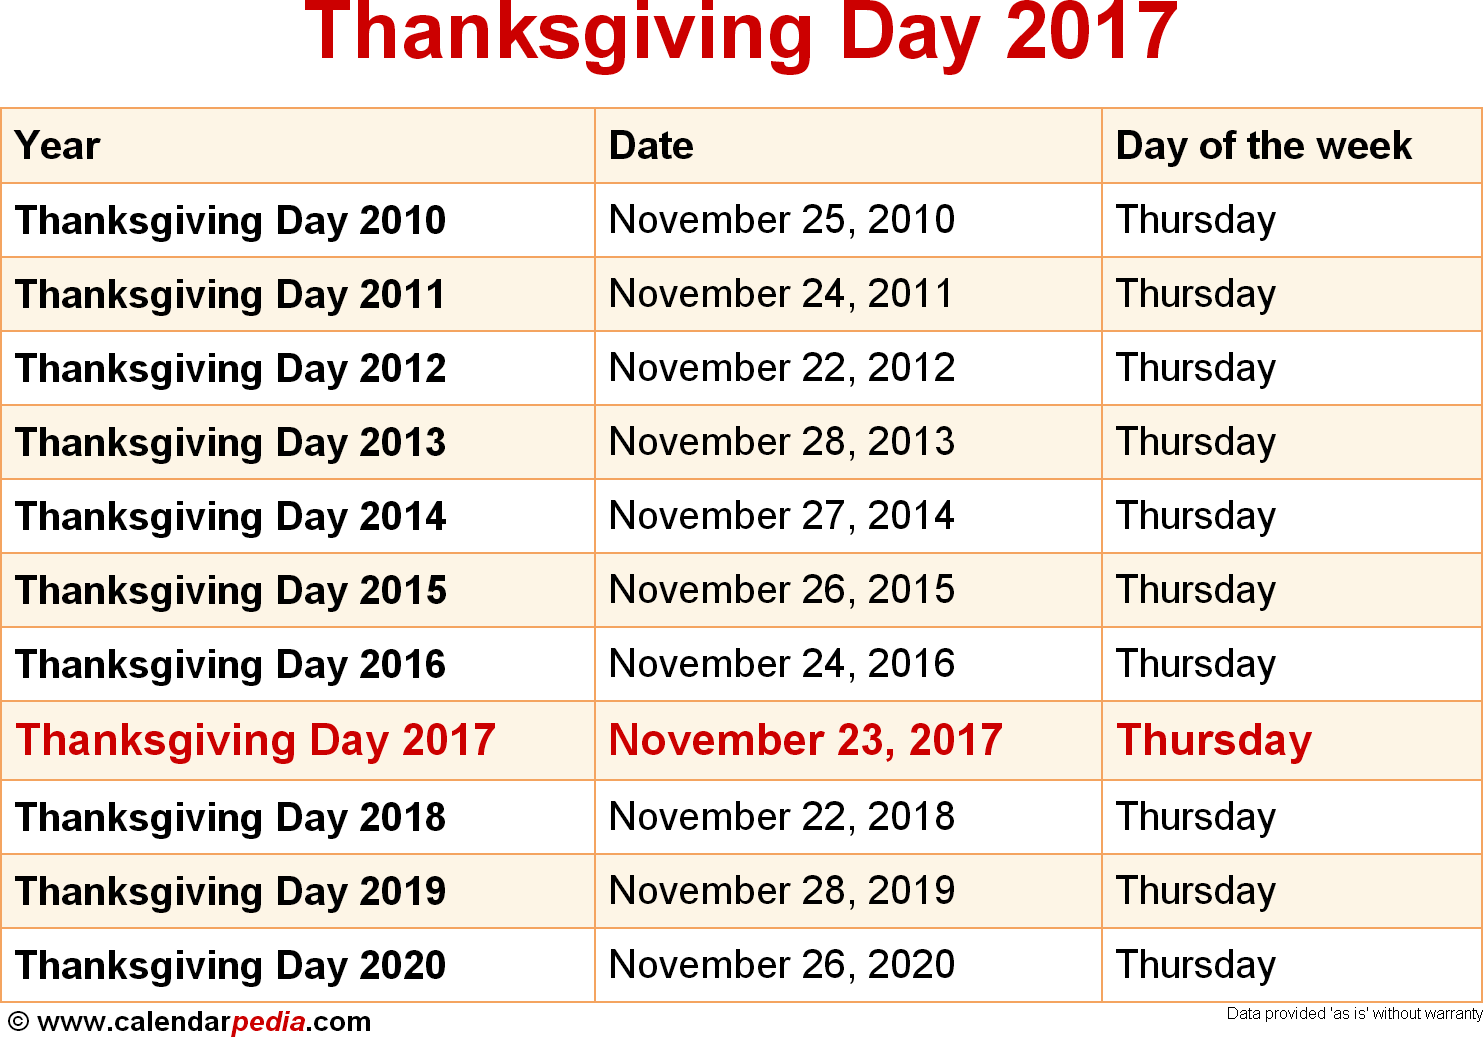 When is Thanksgiving Day 2017 & 2018? Dates of Thanksgiving Day